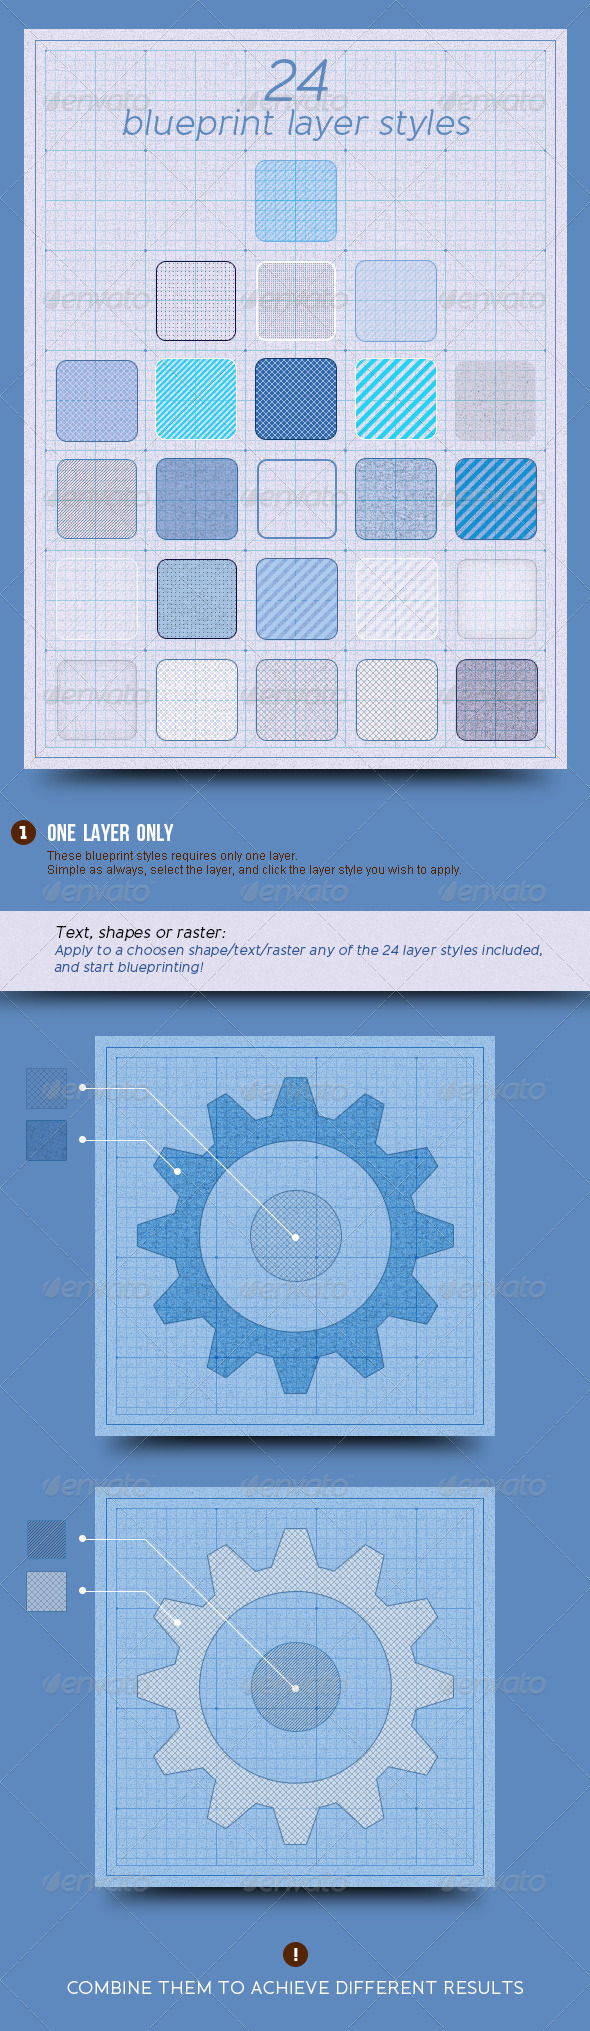 GraphicRiver 24 Blueprint Layer Styles 5182861